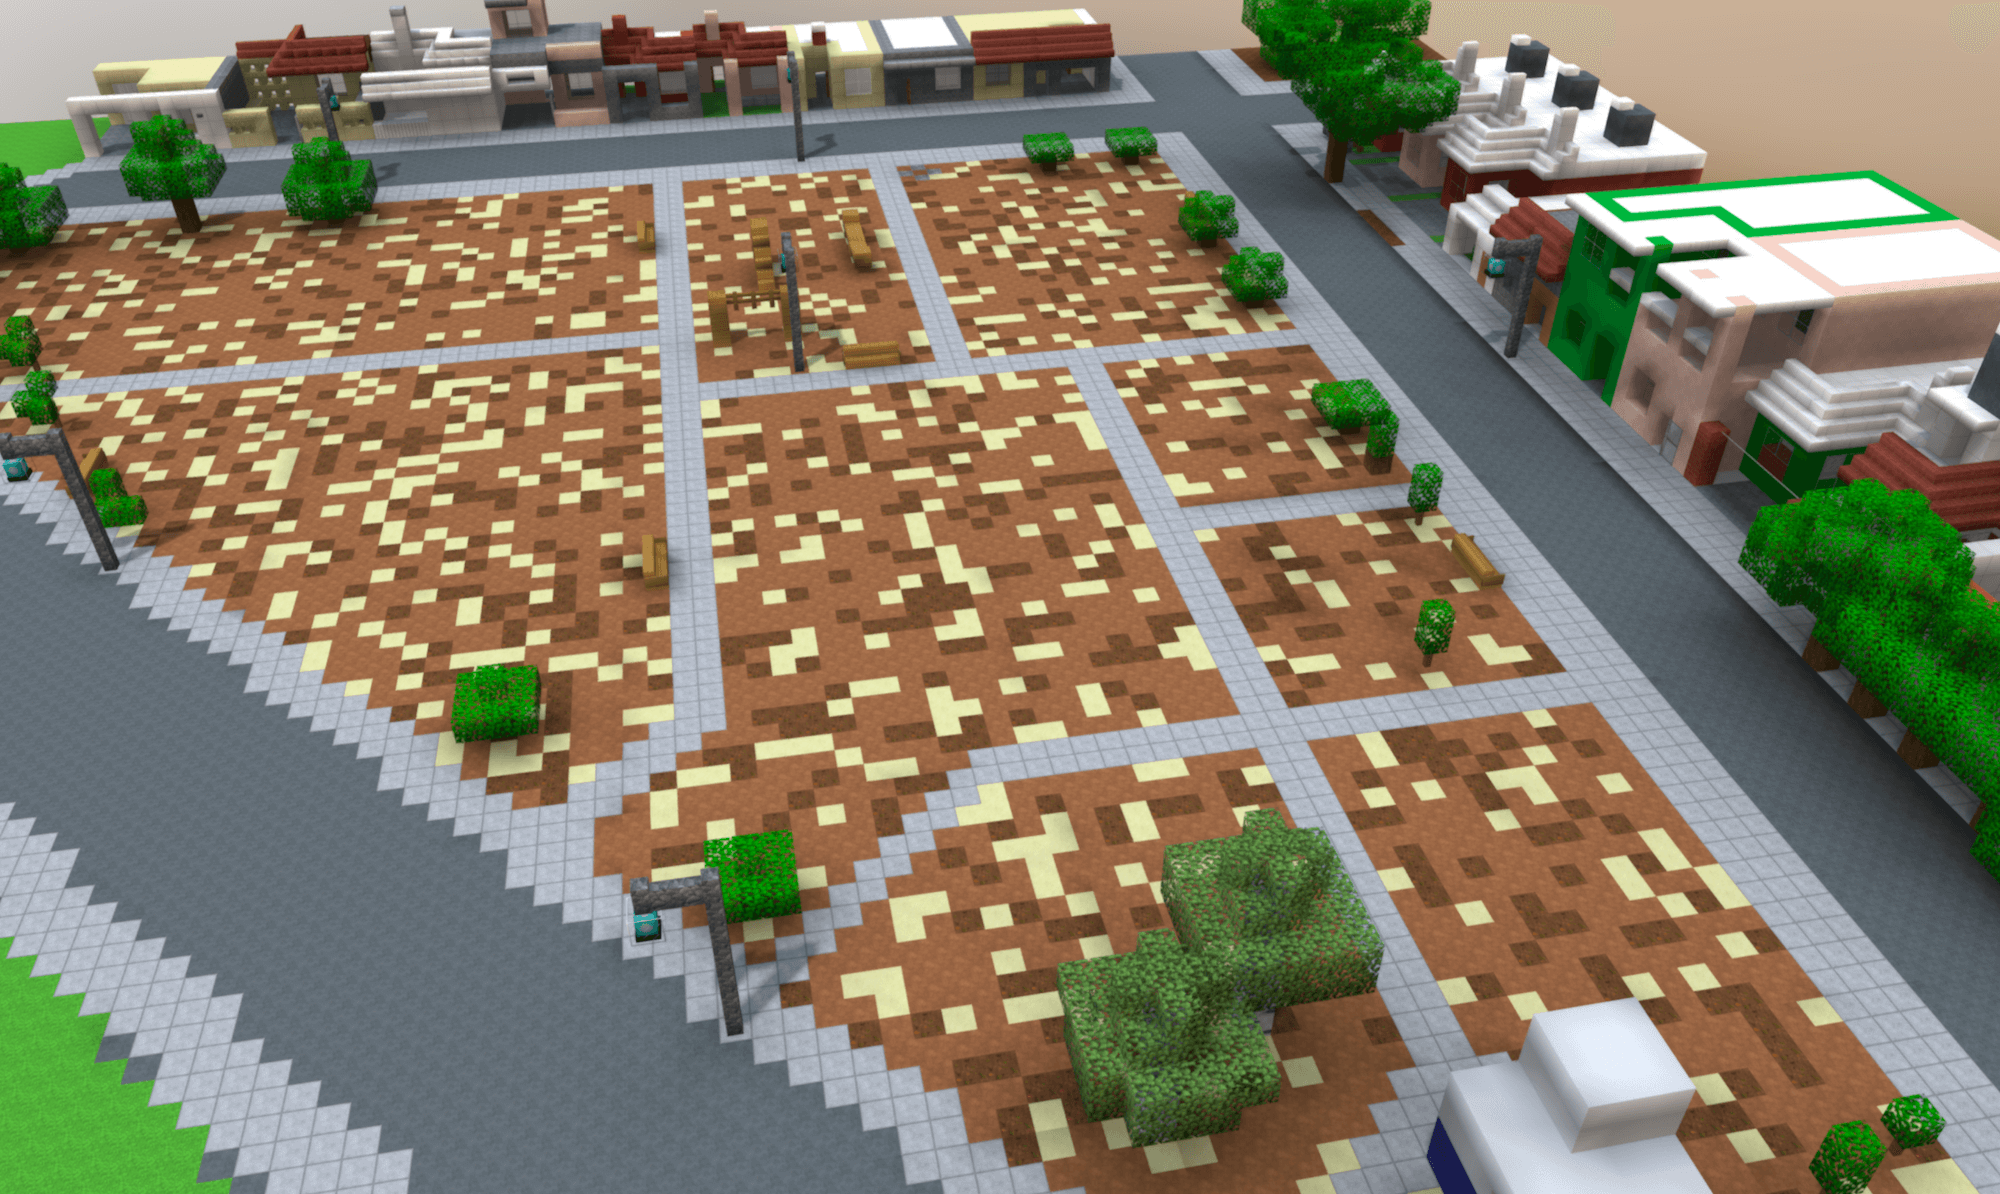 3D Minecraft Model of Mexicali